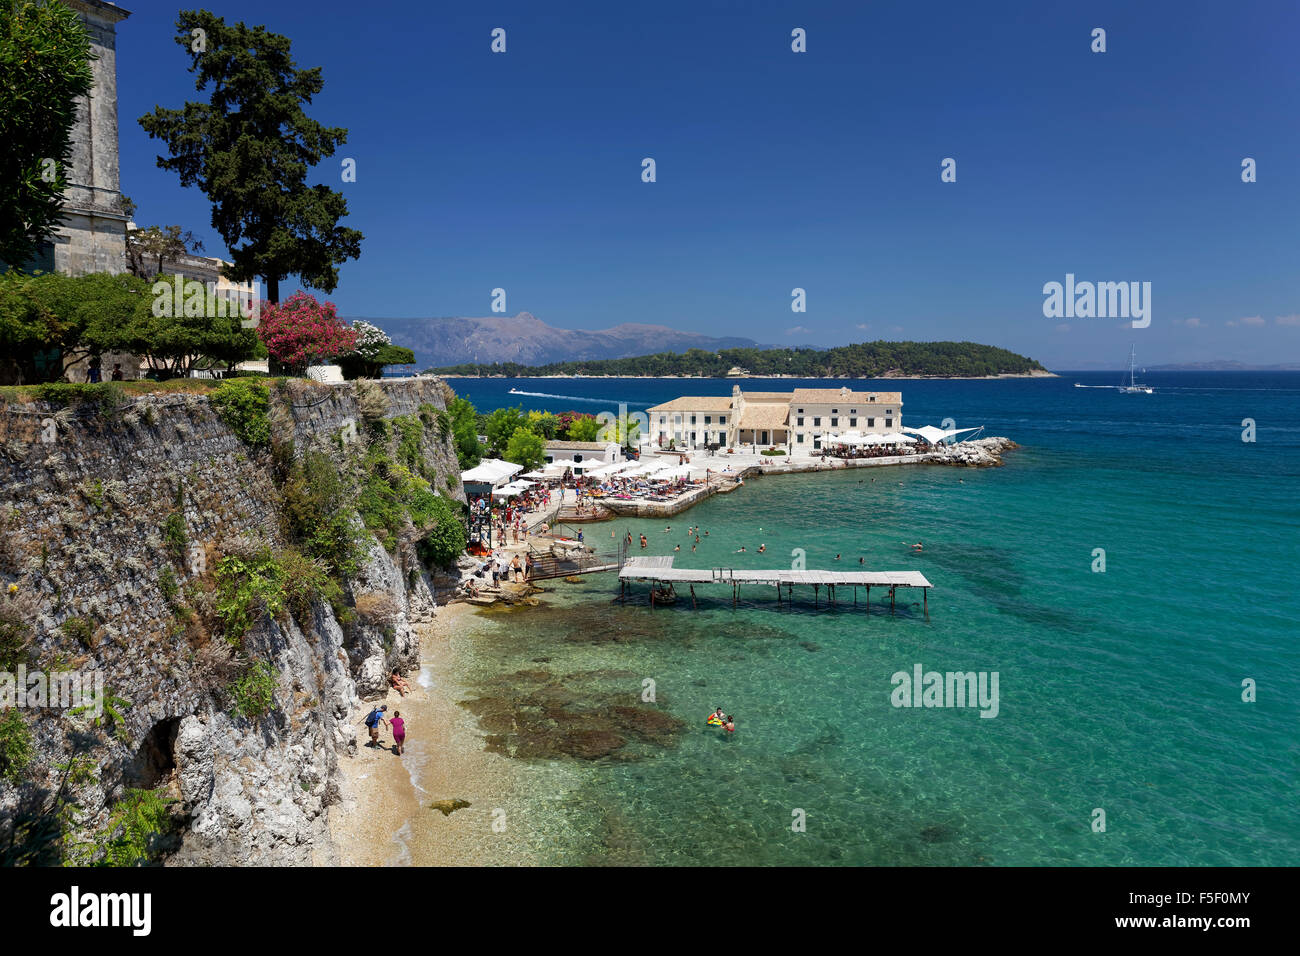 Faliraki bath with En Plo café and restaurant, Vido Island or Ptichia, Kerkyra historic centre, Corfu town - Stock Image